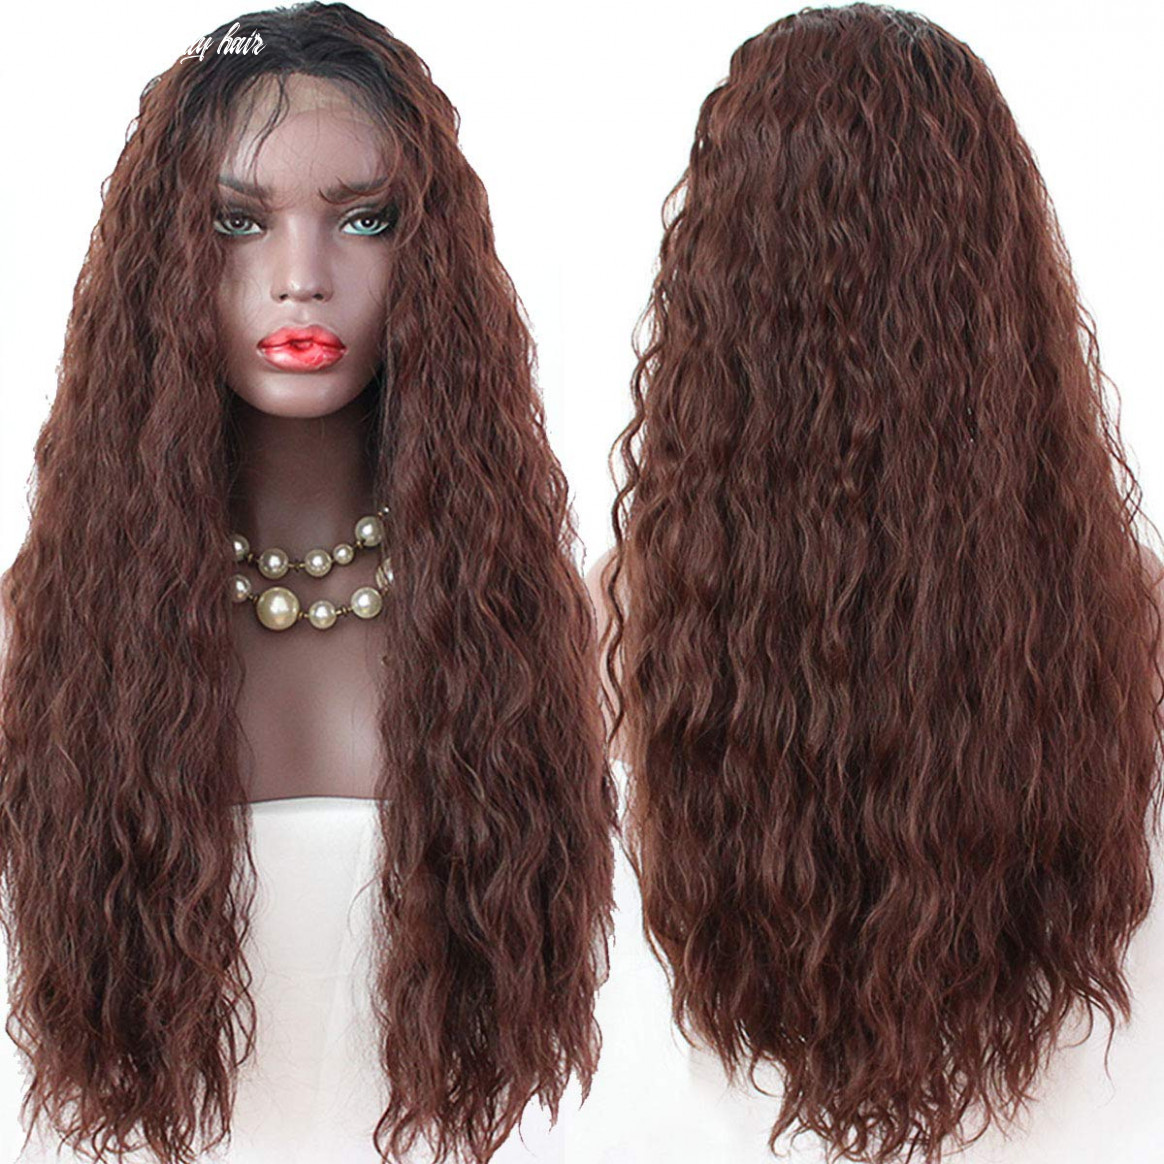 Maycaur black dark brown hair long curly synthetic lace front wigs for black women with natural baby hair curly ombre color wig(black #8 color) long brown curly hair